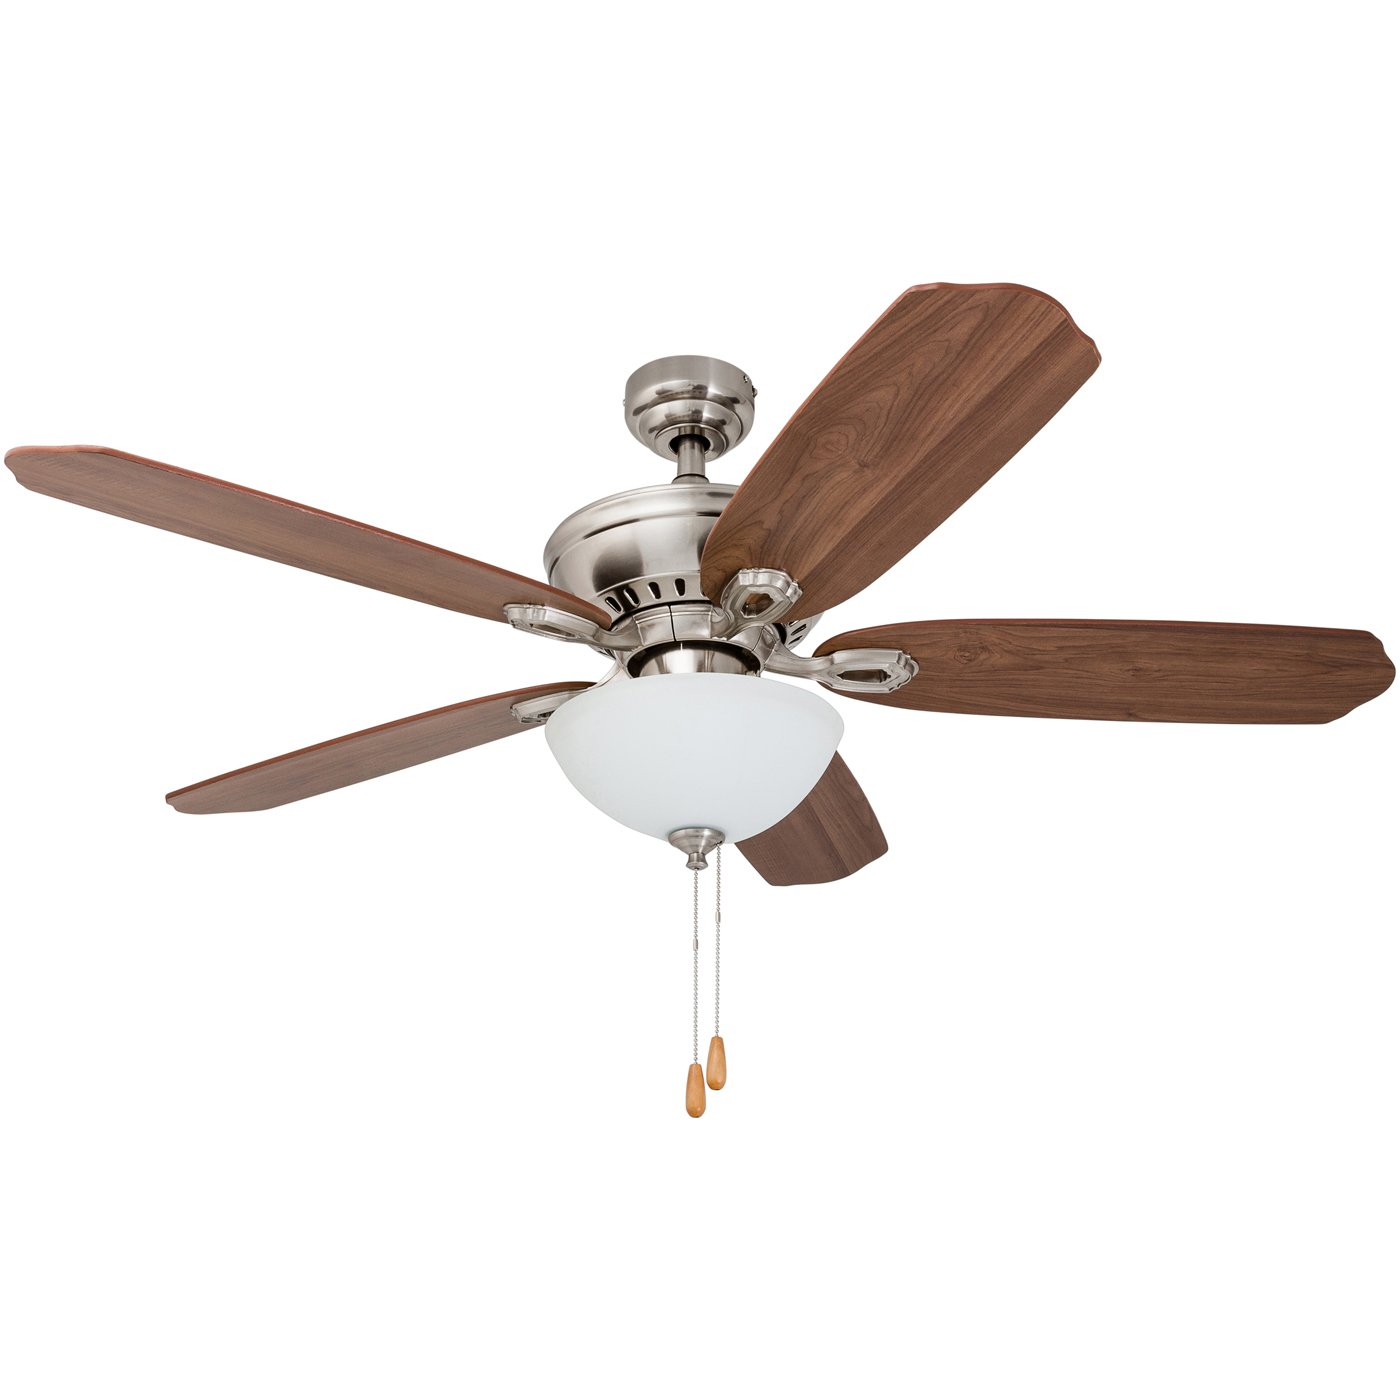 Prominence Home 50333-01 Spring Hollow Ceiling Fan, 52 inches, Reversible Fan Blades, Brushed Nickel